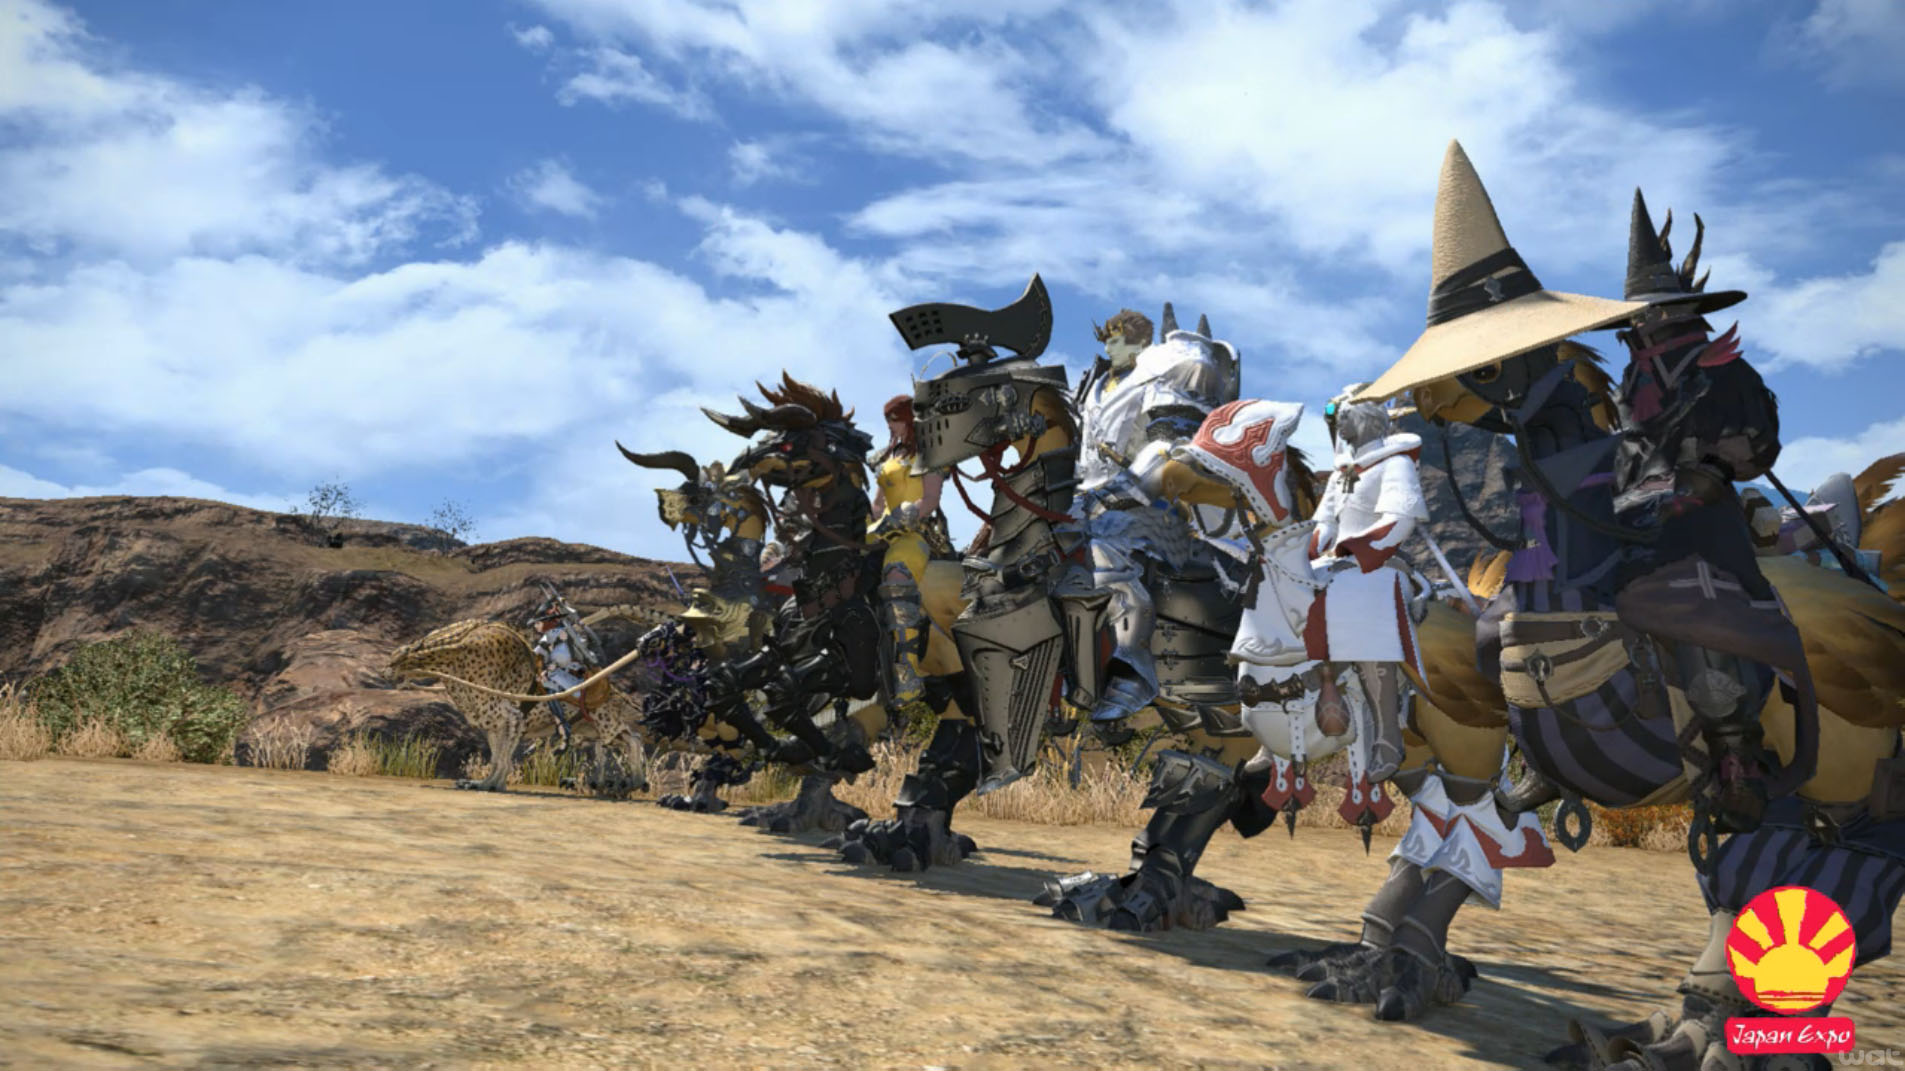 skai ffxiv gamespot link removed have from devs floodgates comments opened